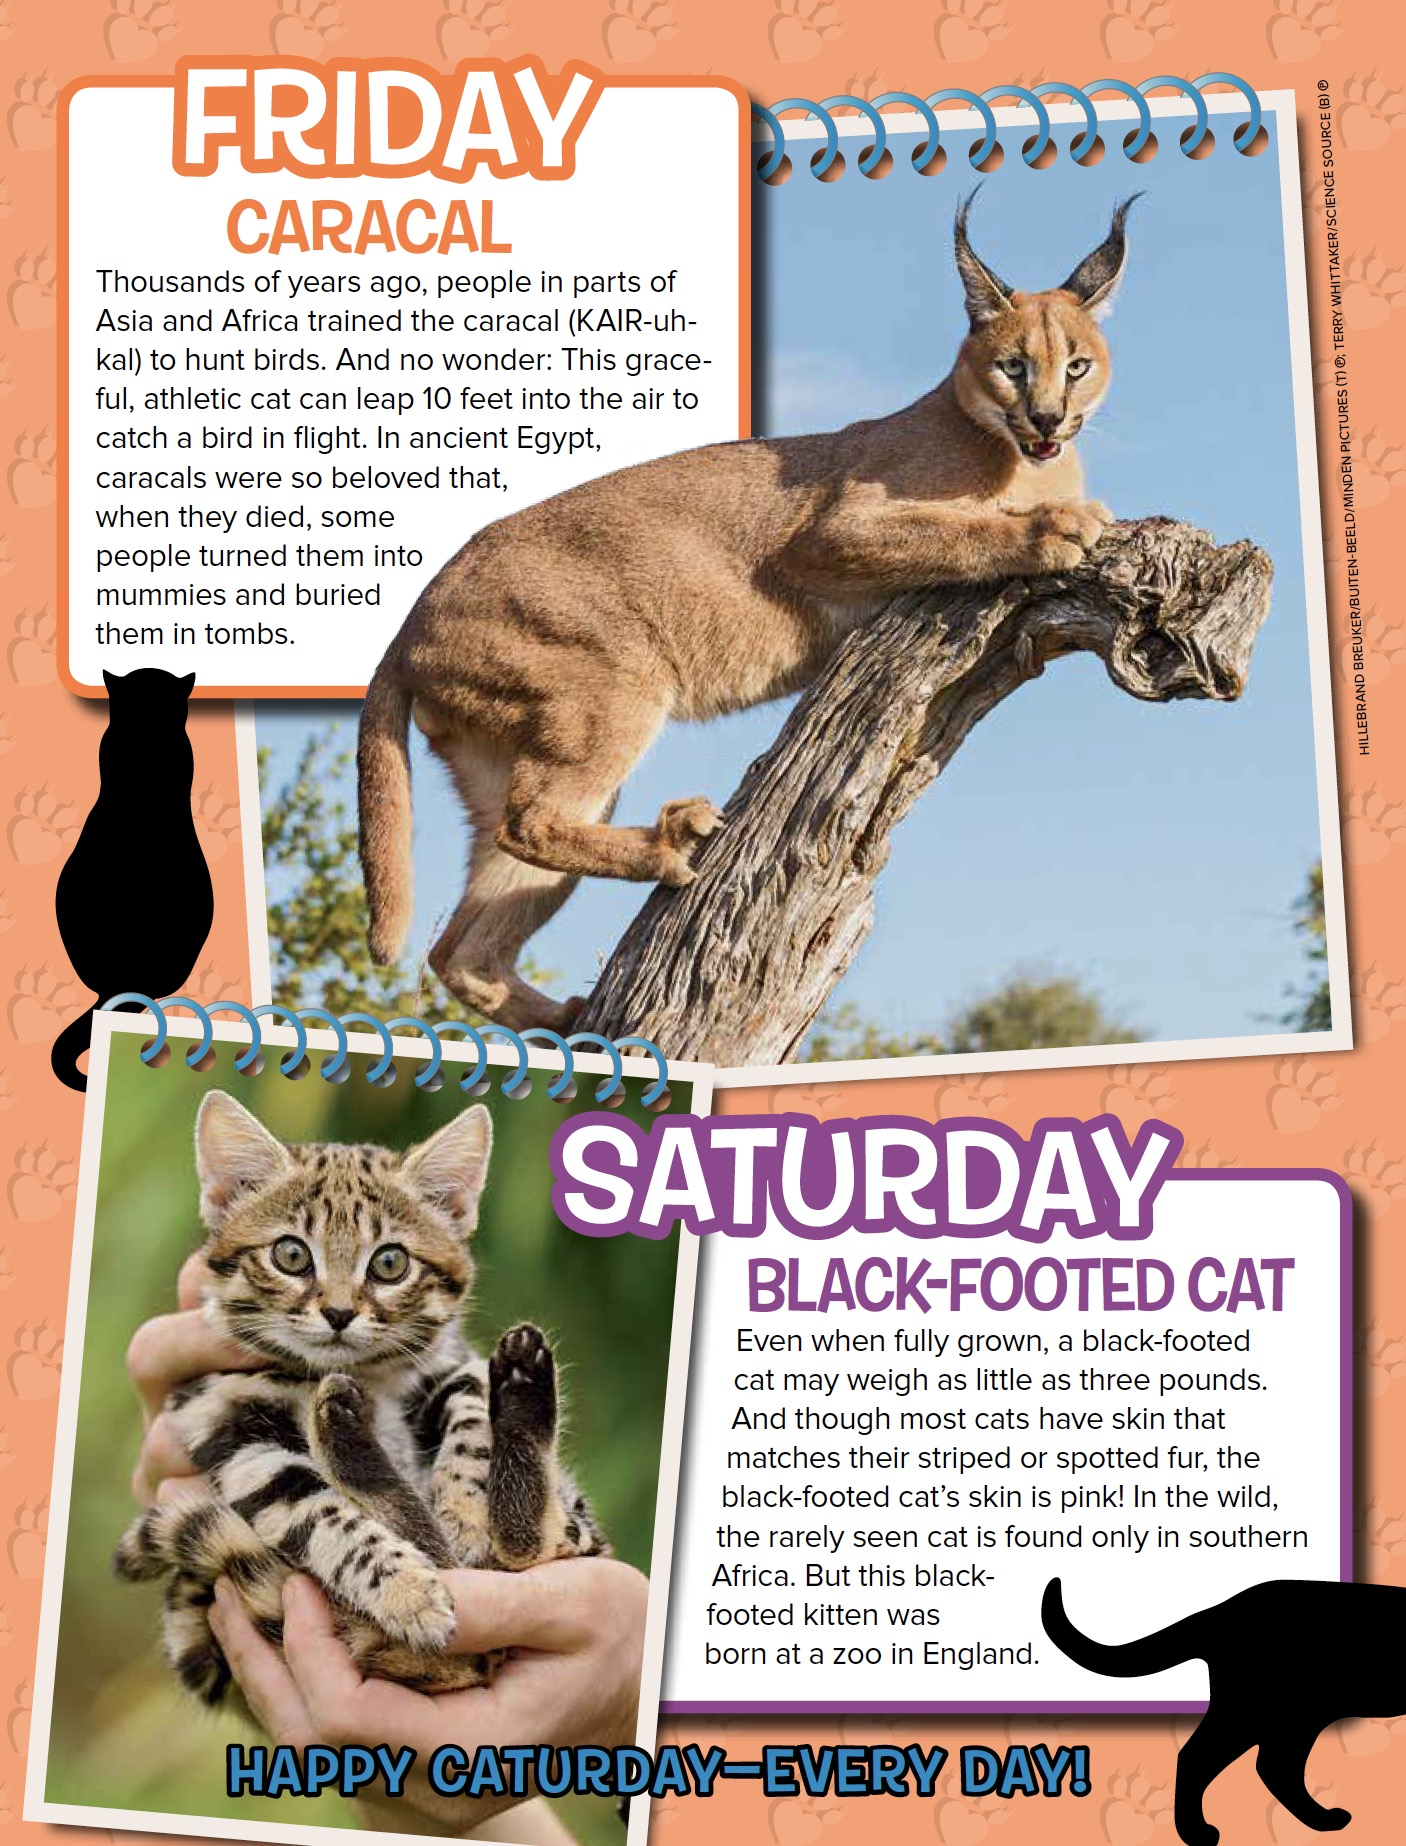 What Eats The Black Footed Cat